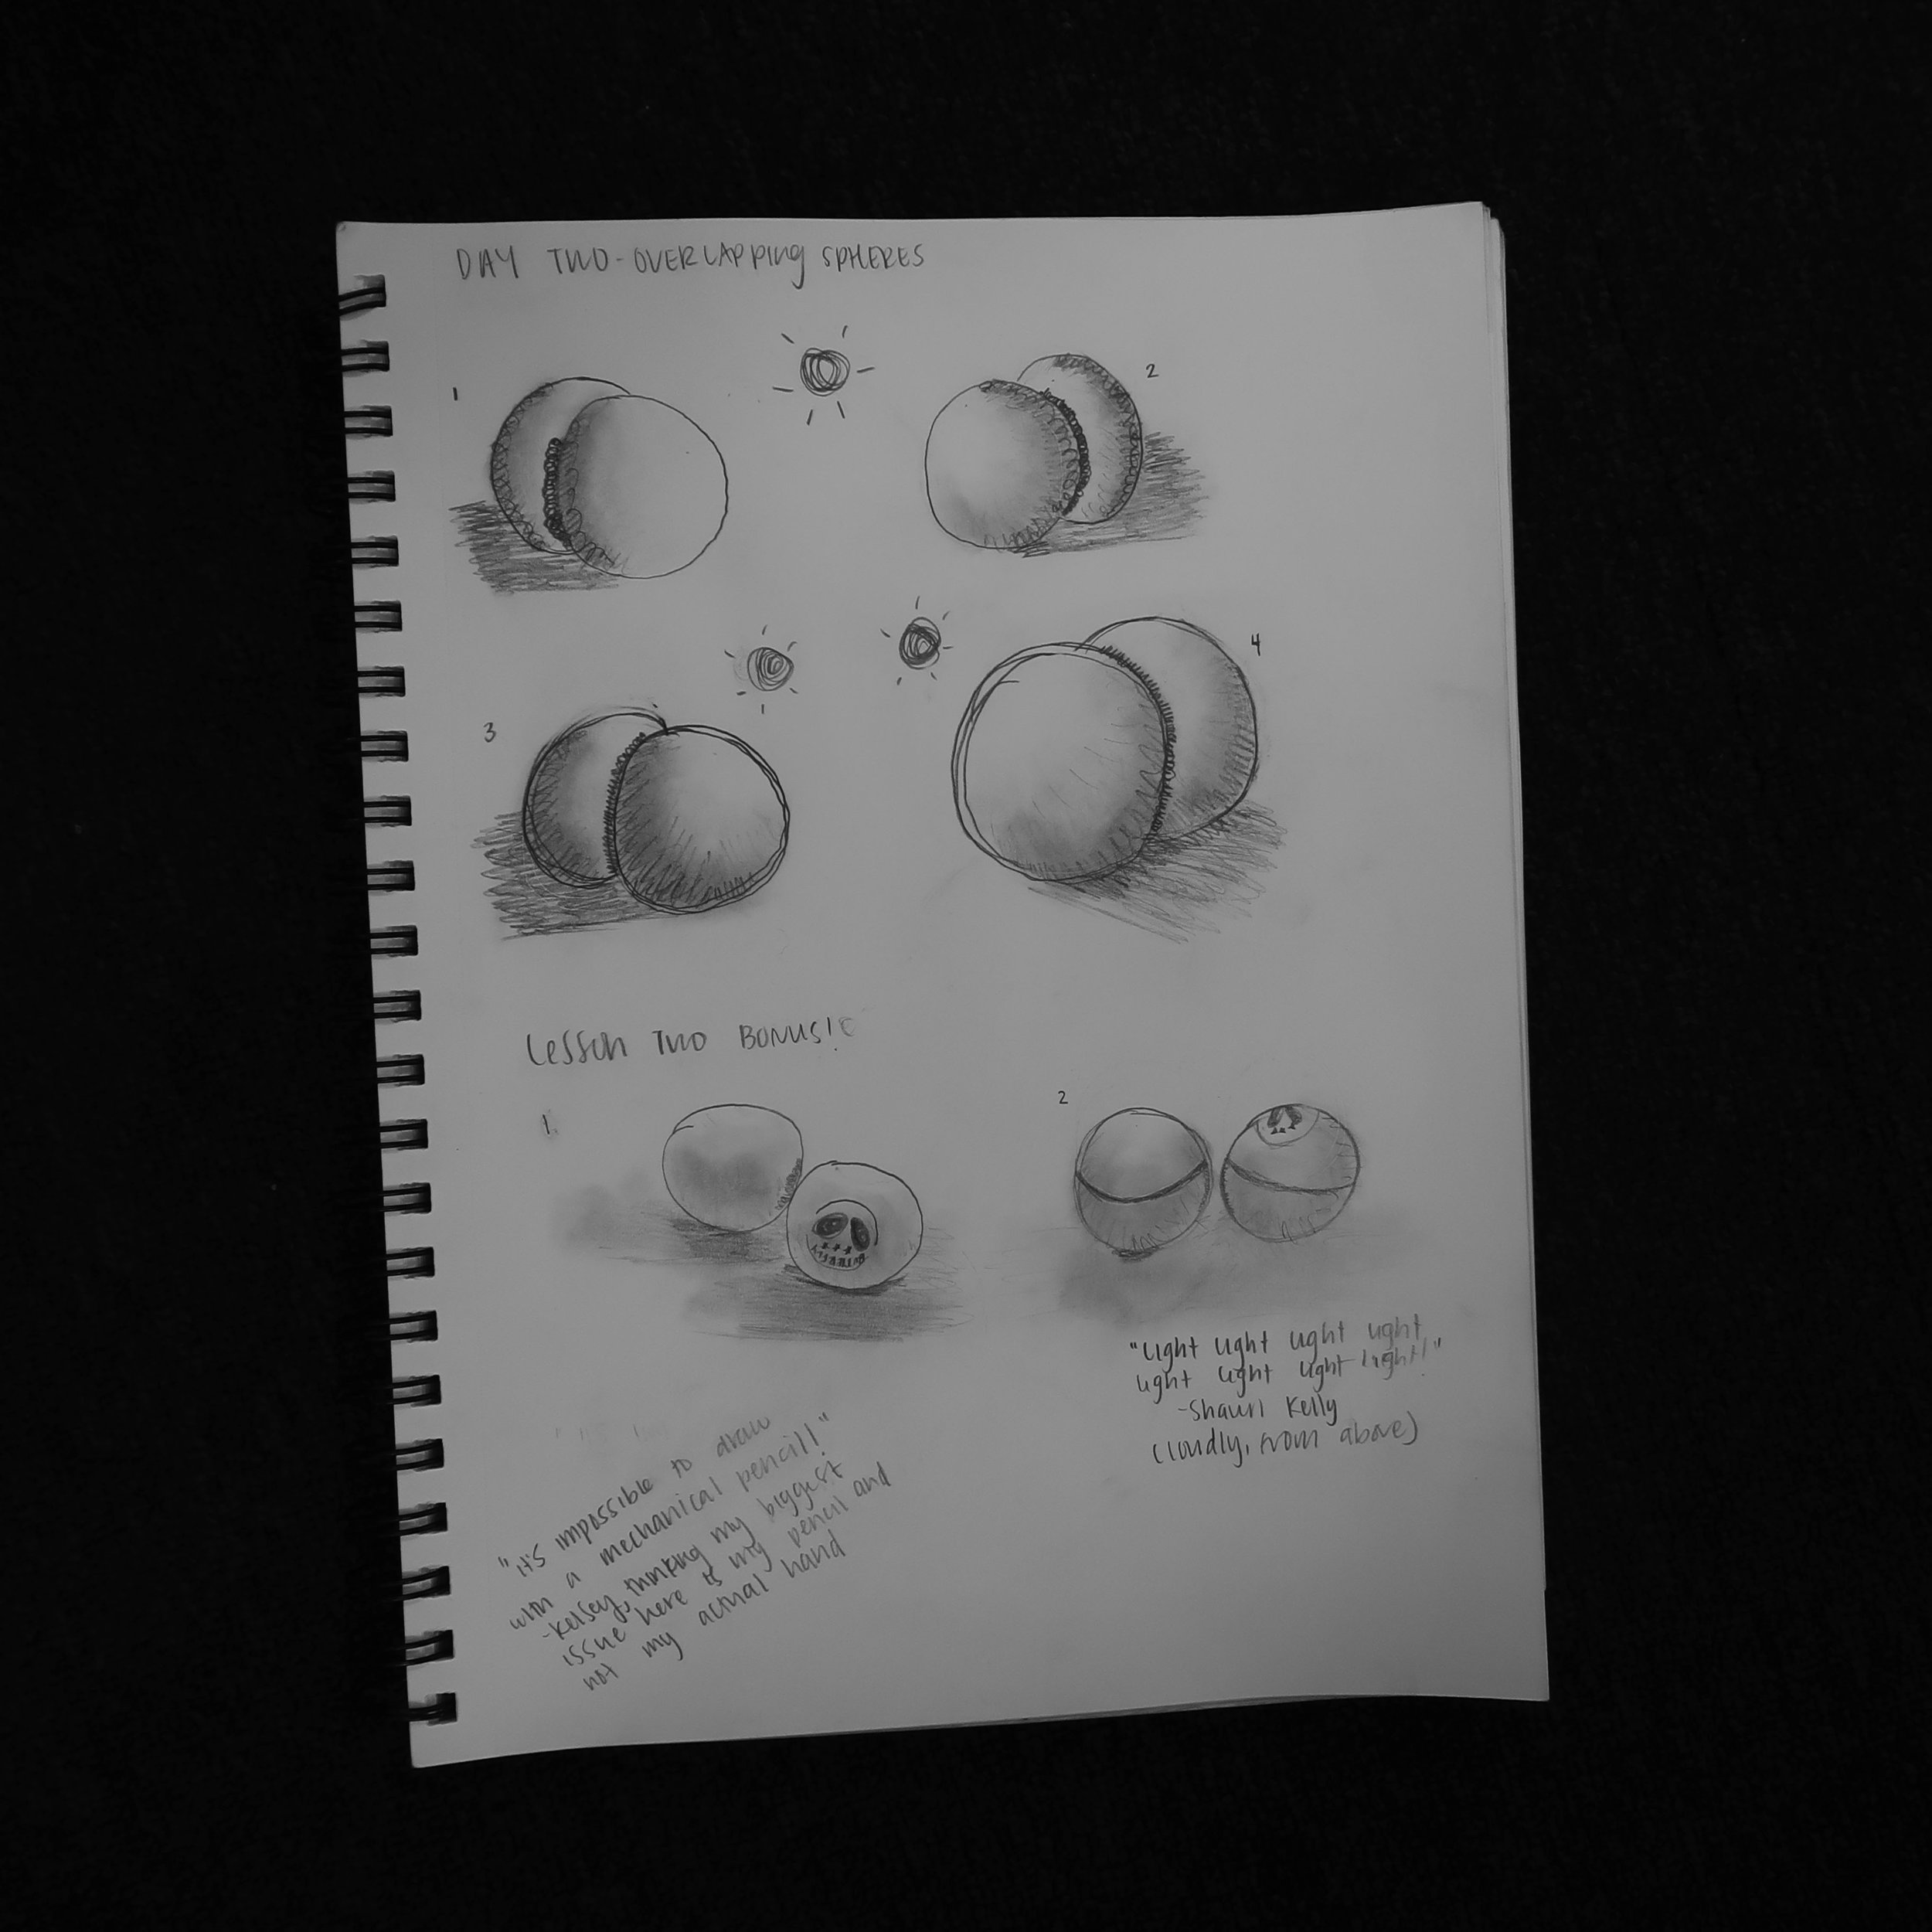 Butts! Lesson 2 was butts.